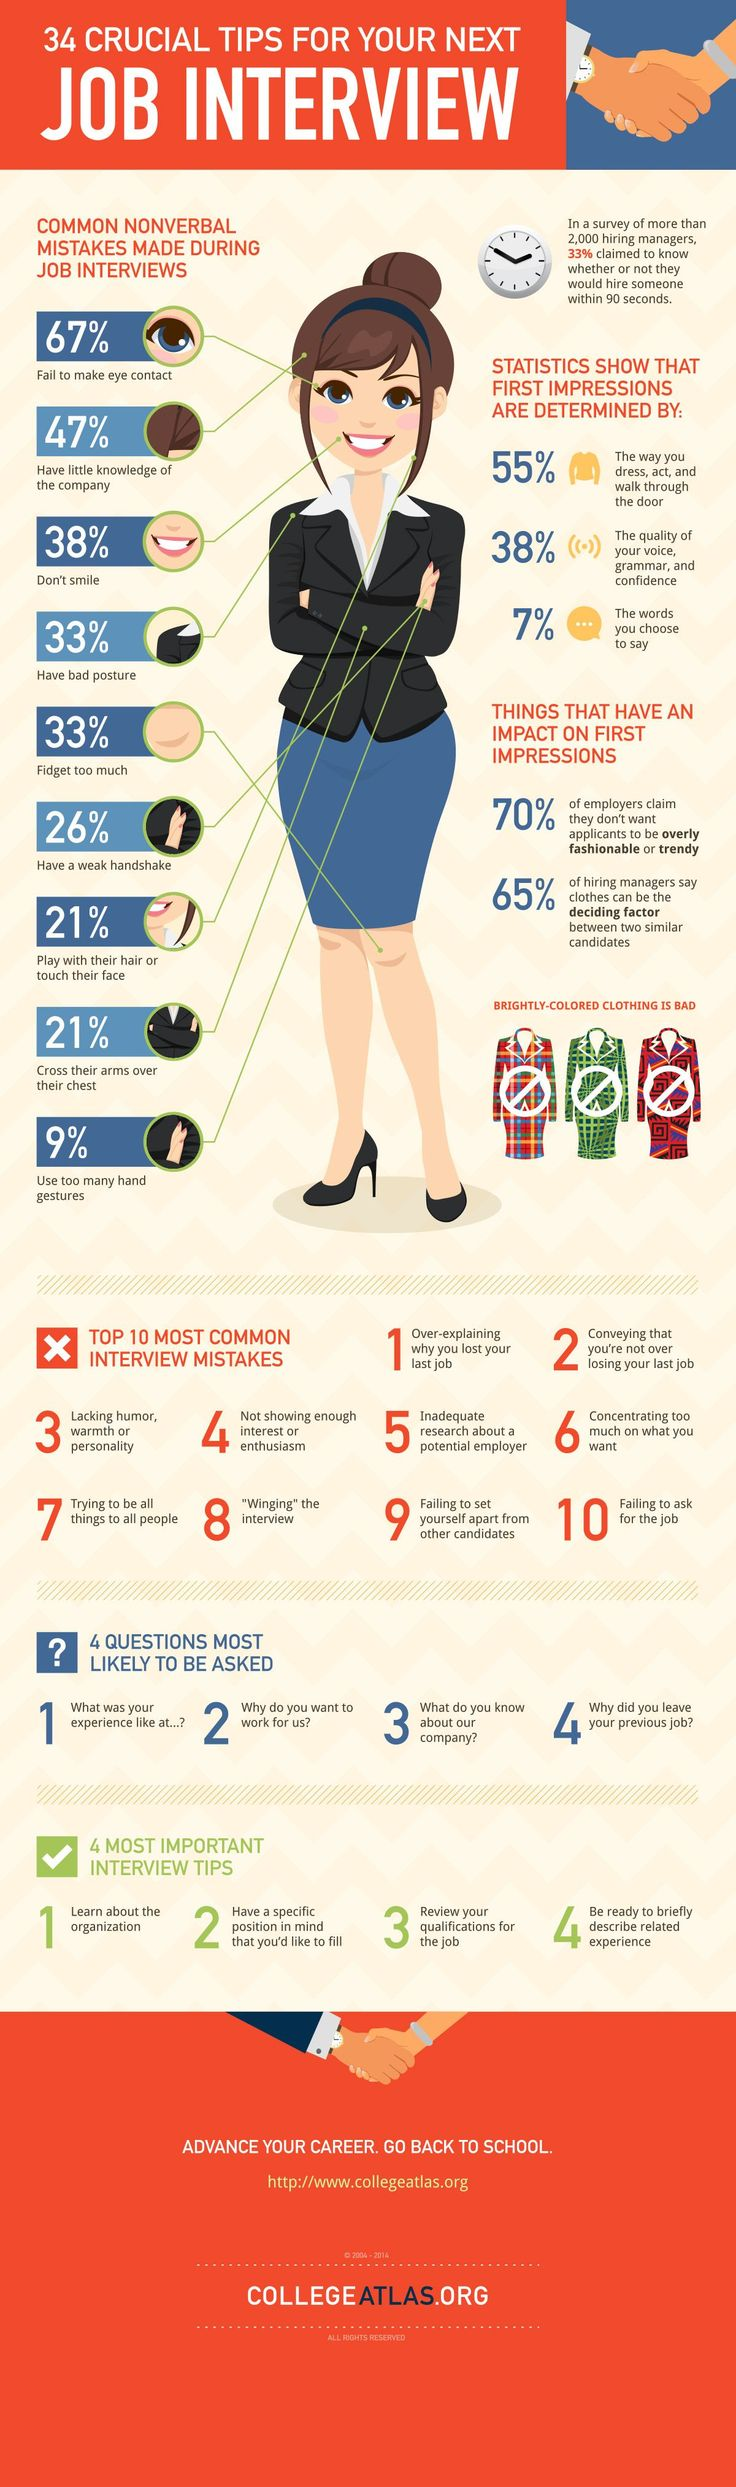 (34 Tips for Your Next Job Interview) - http://betterhiring.com/34-tips-for-your-next-job-interview/ - Next time you go to a job interview – try to remember some of these tips! CollegeAtlas.org have collected 34 of the most important in the infographic below. Takeaways:  38% of people don't smile during a job interview – this is a mistake!   First impressions are 55% decided by the way you dress, ...